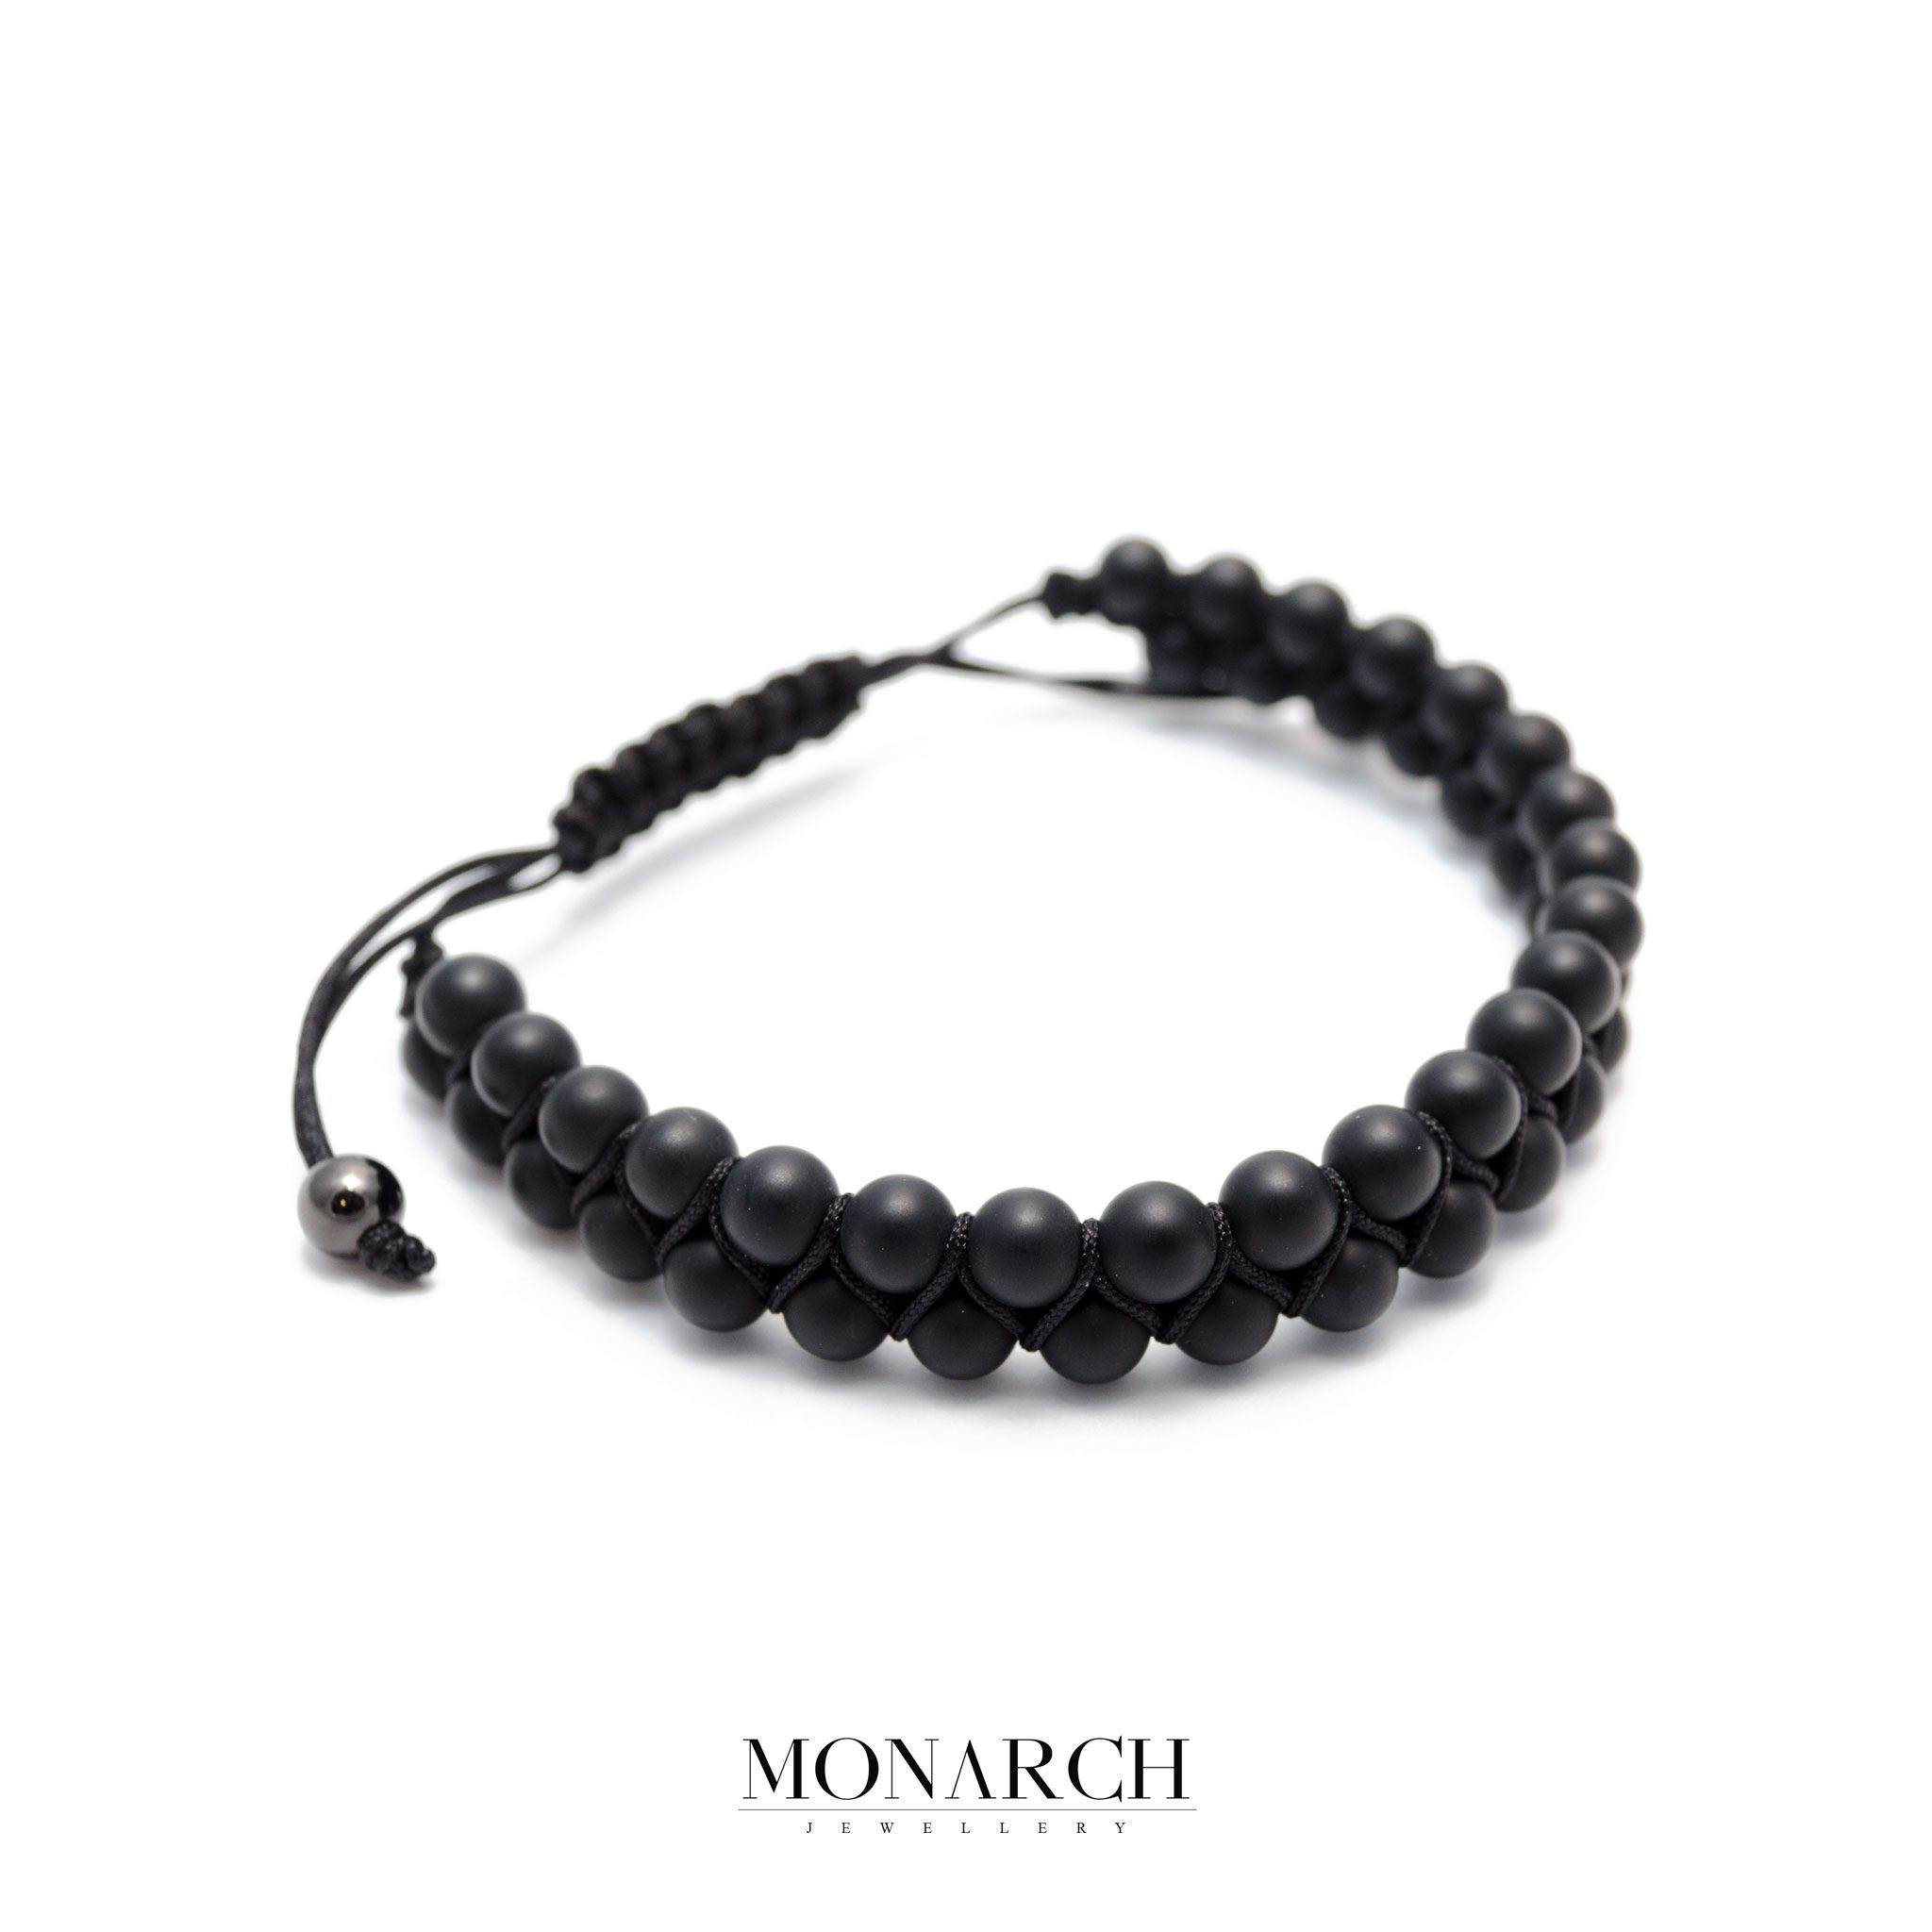 Monarch Jewellery Black Matte Luxury Macrame Bracelet